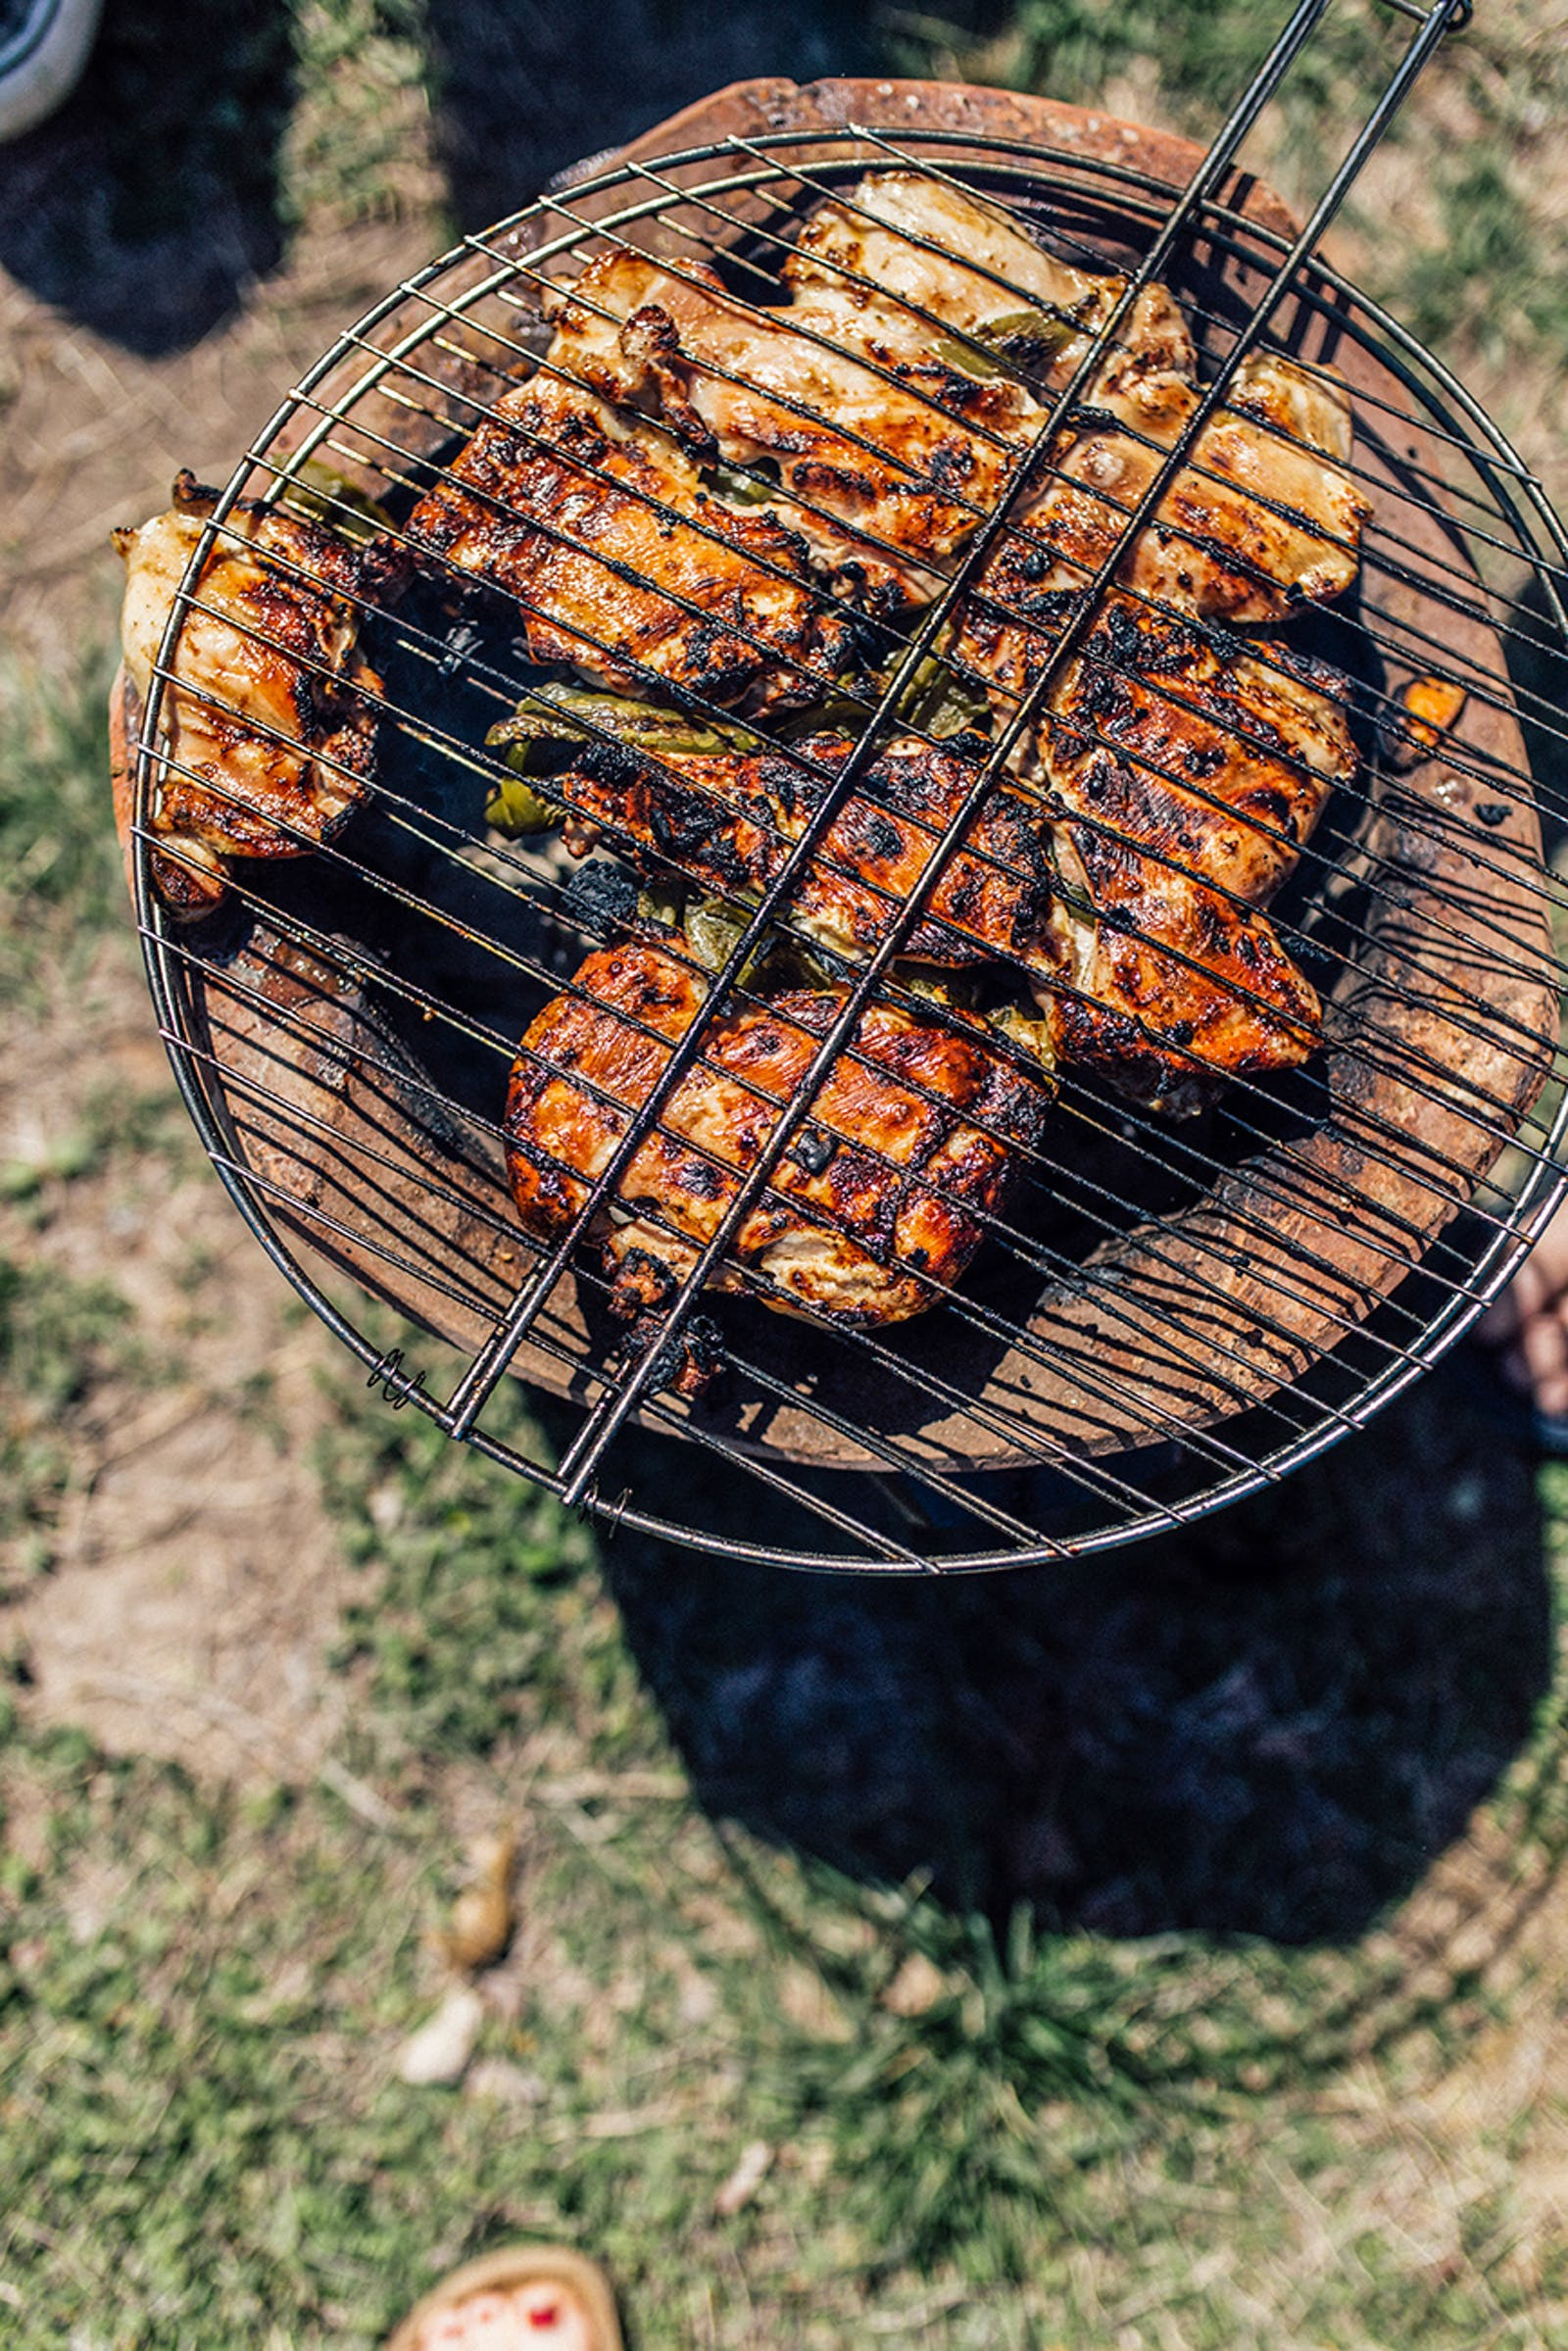 Chicken thighs charring on a small Burmese/Thai grill.